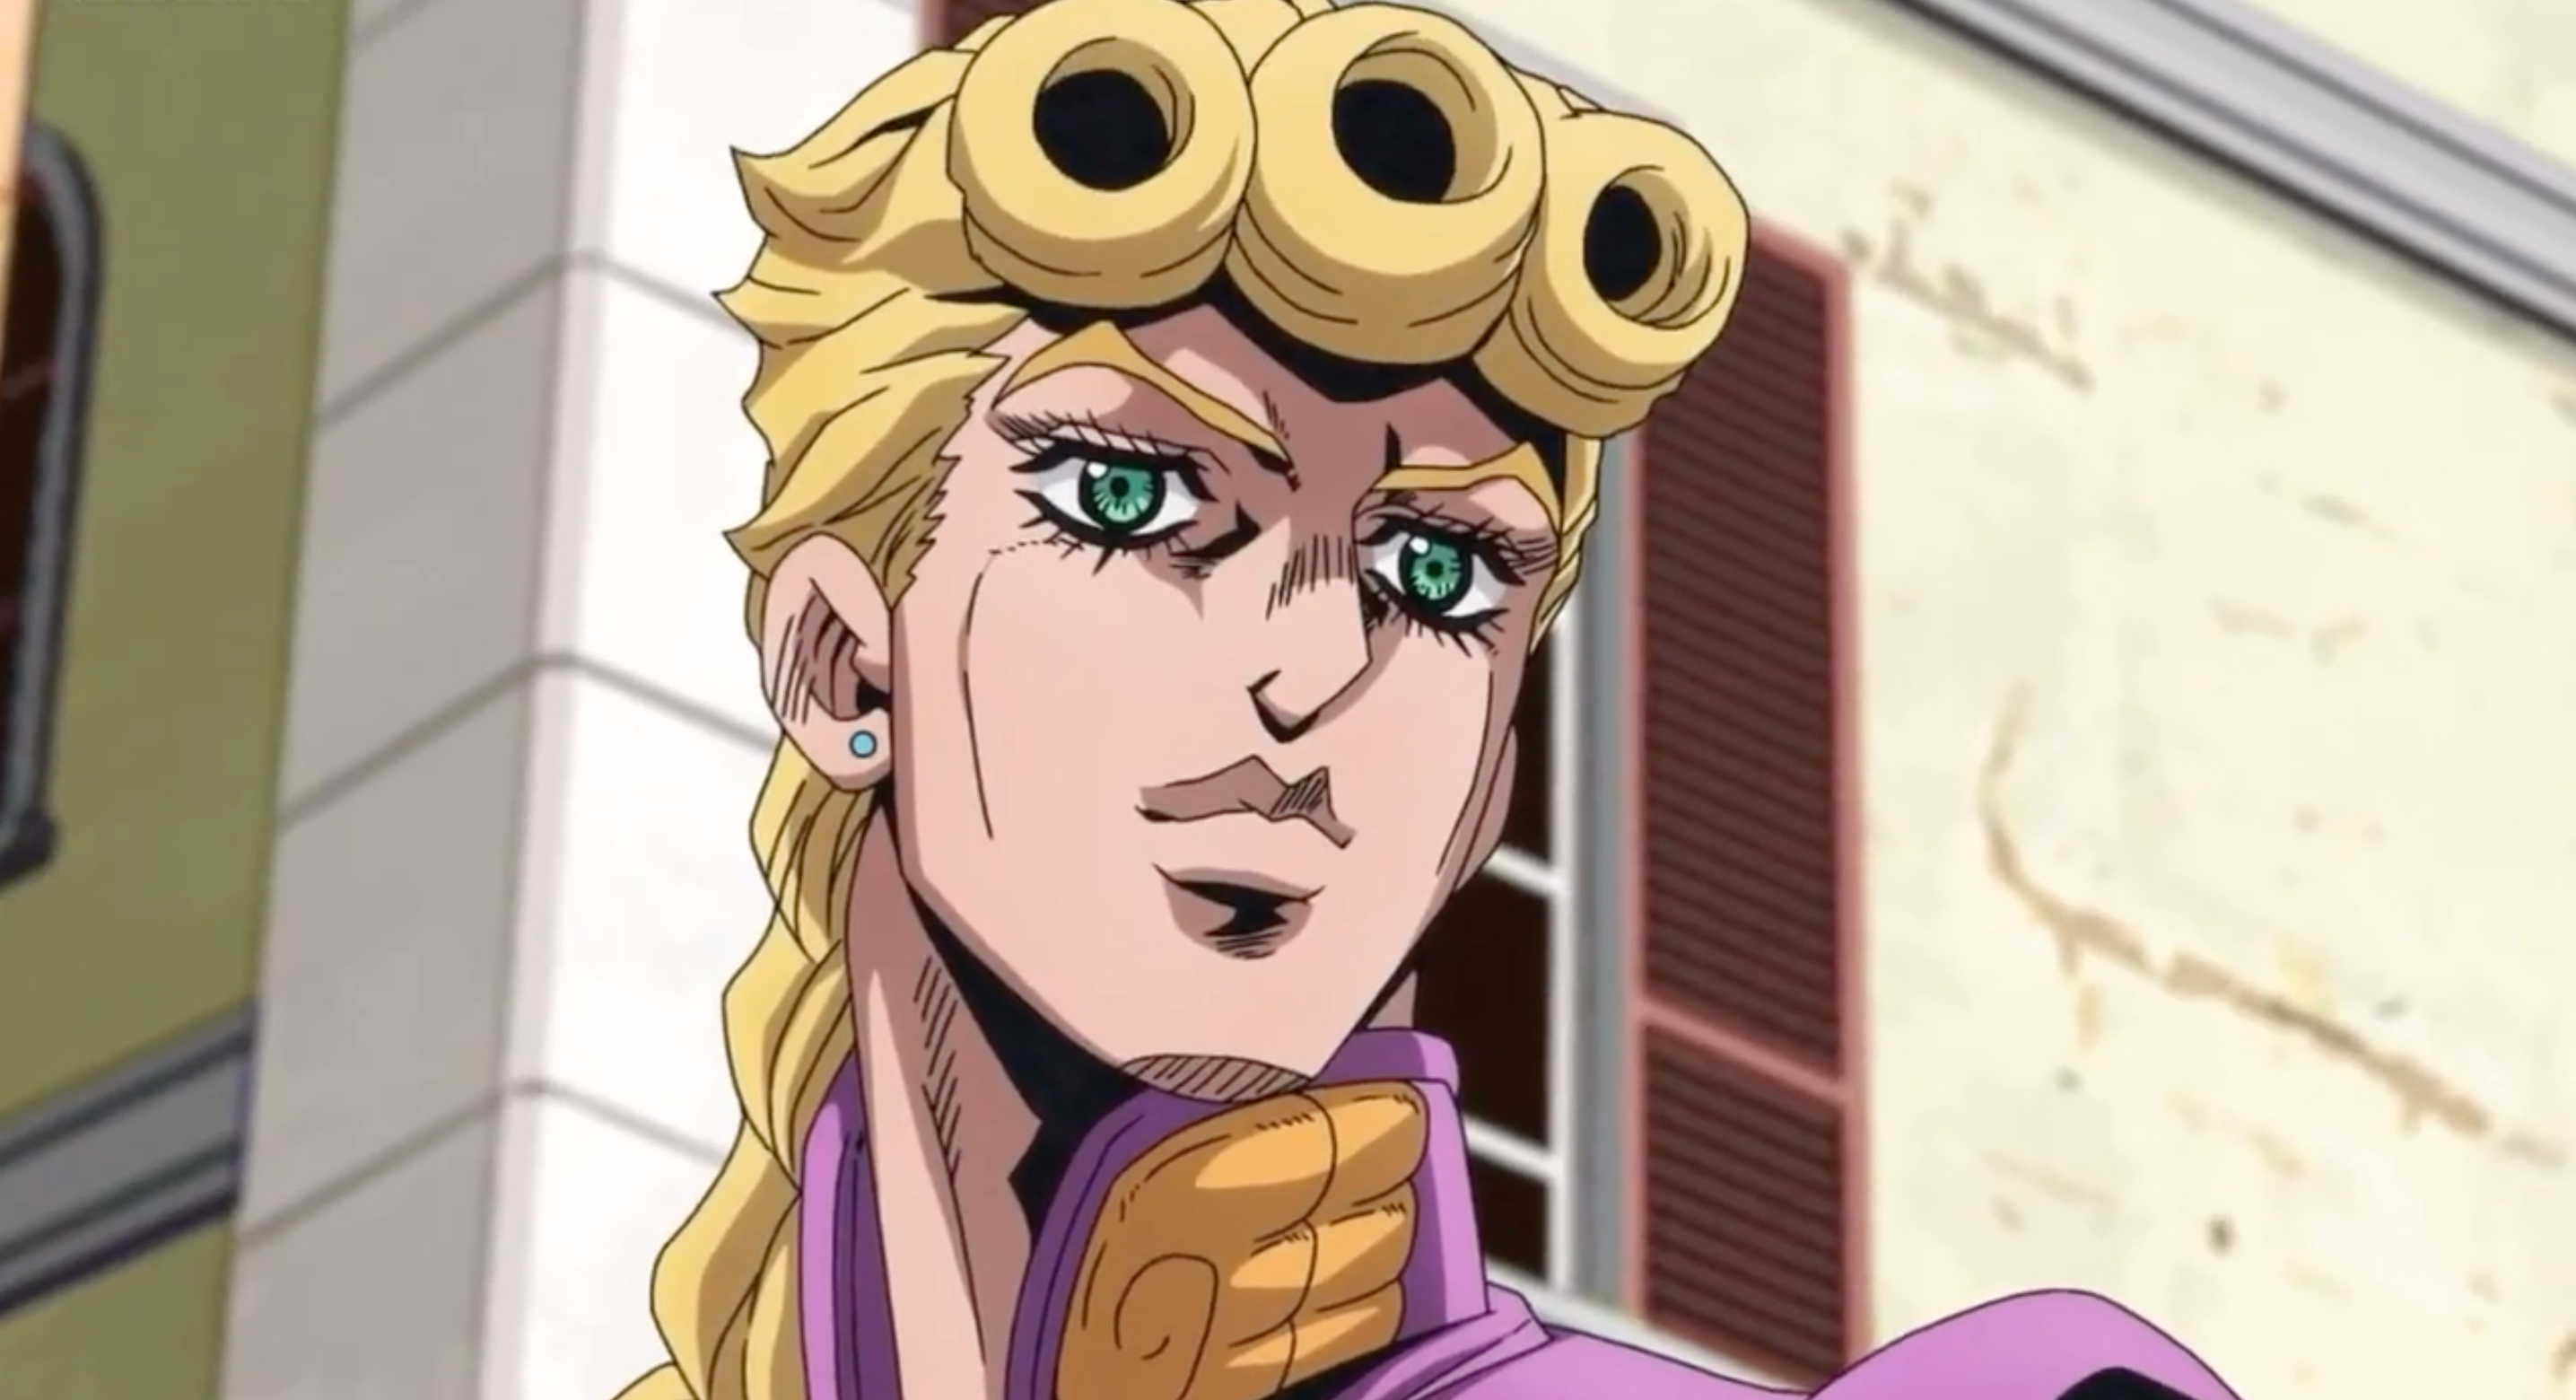 JoJo's Bizarre Adventure: Golden Wind' Lives up to its